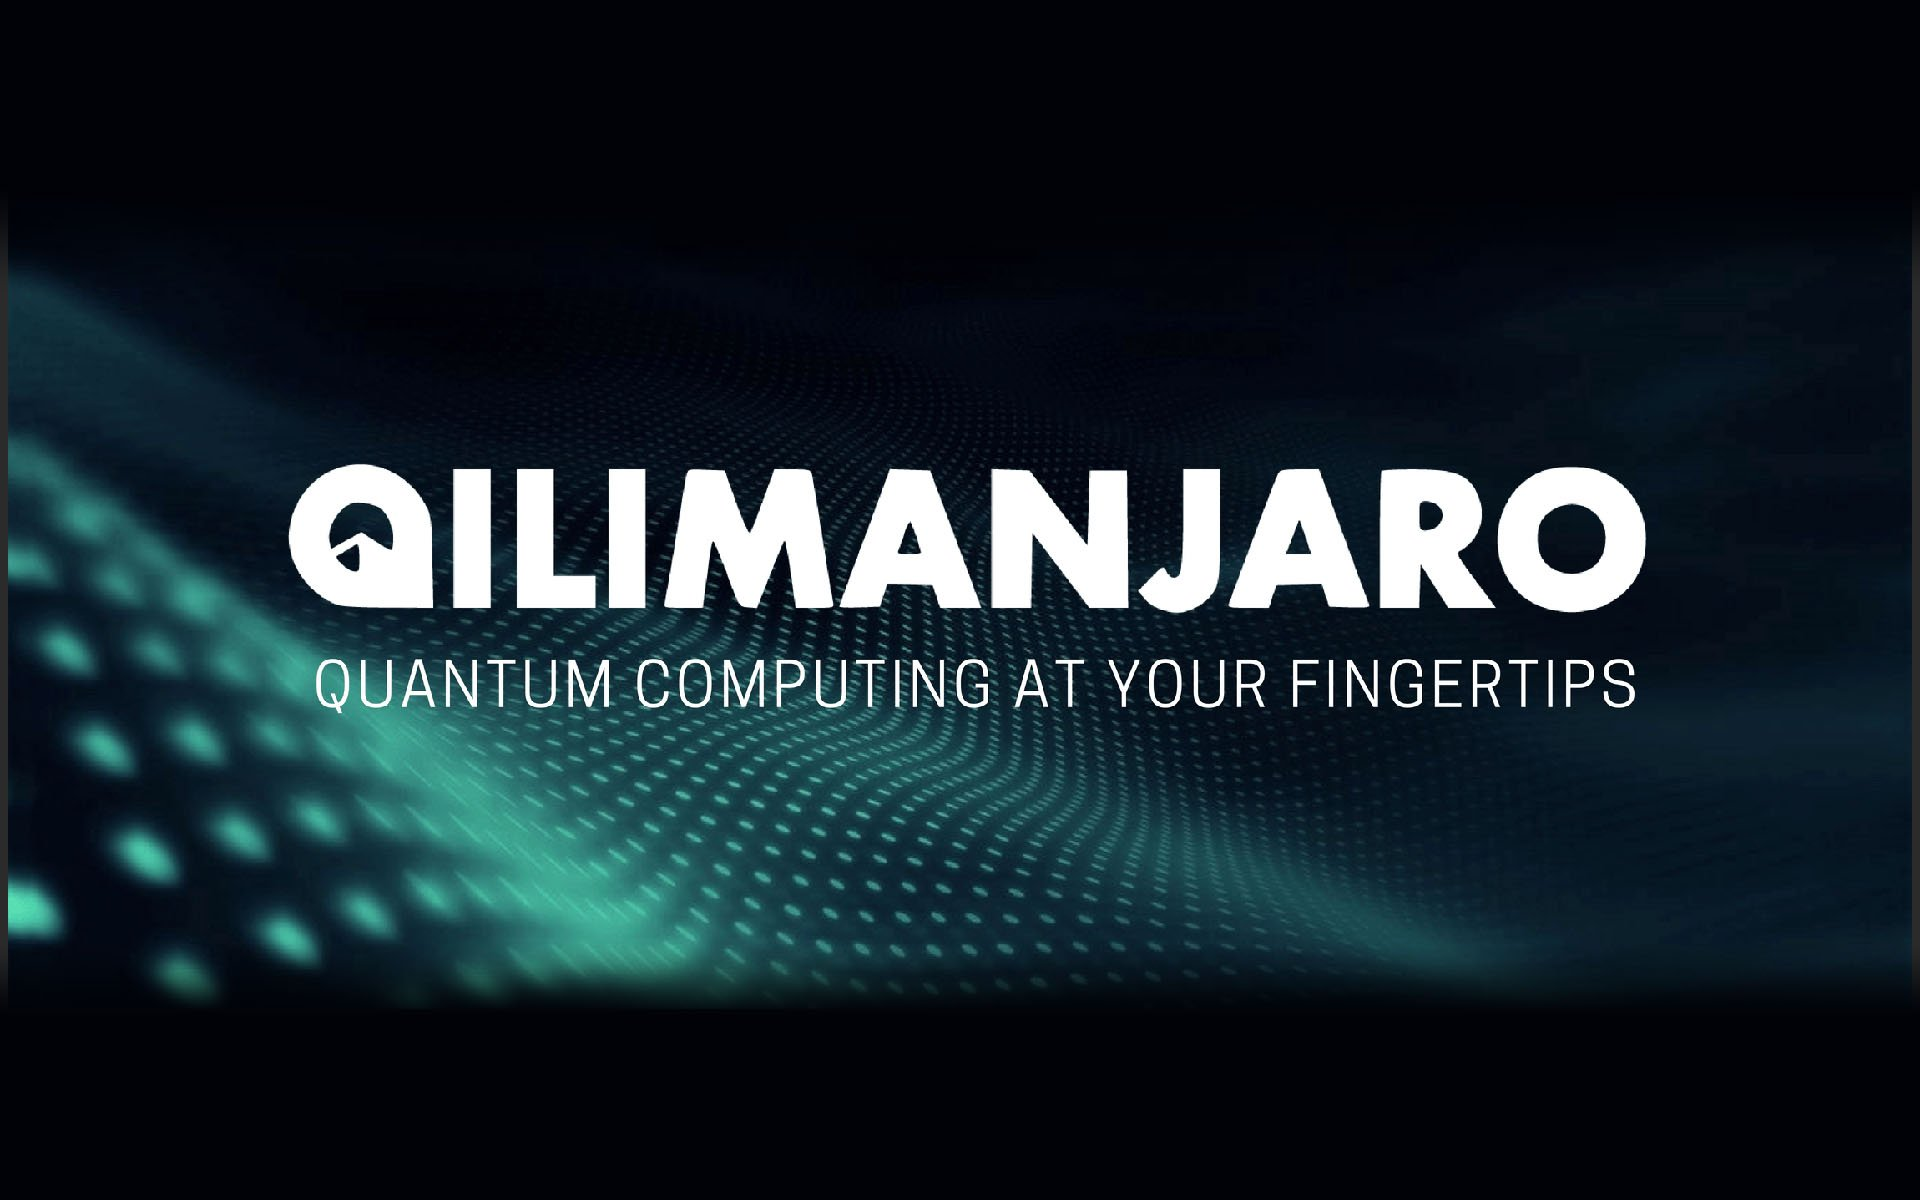 Quantum Computing to Be Shared with the World Through Cloud Technology Thanks to Qilimanjaro